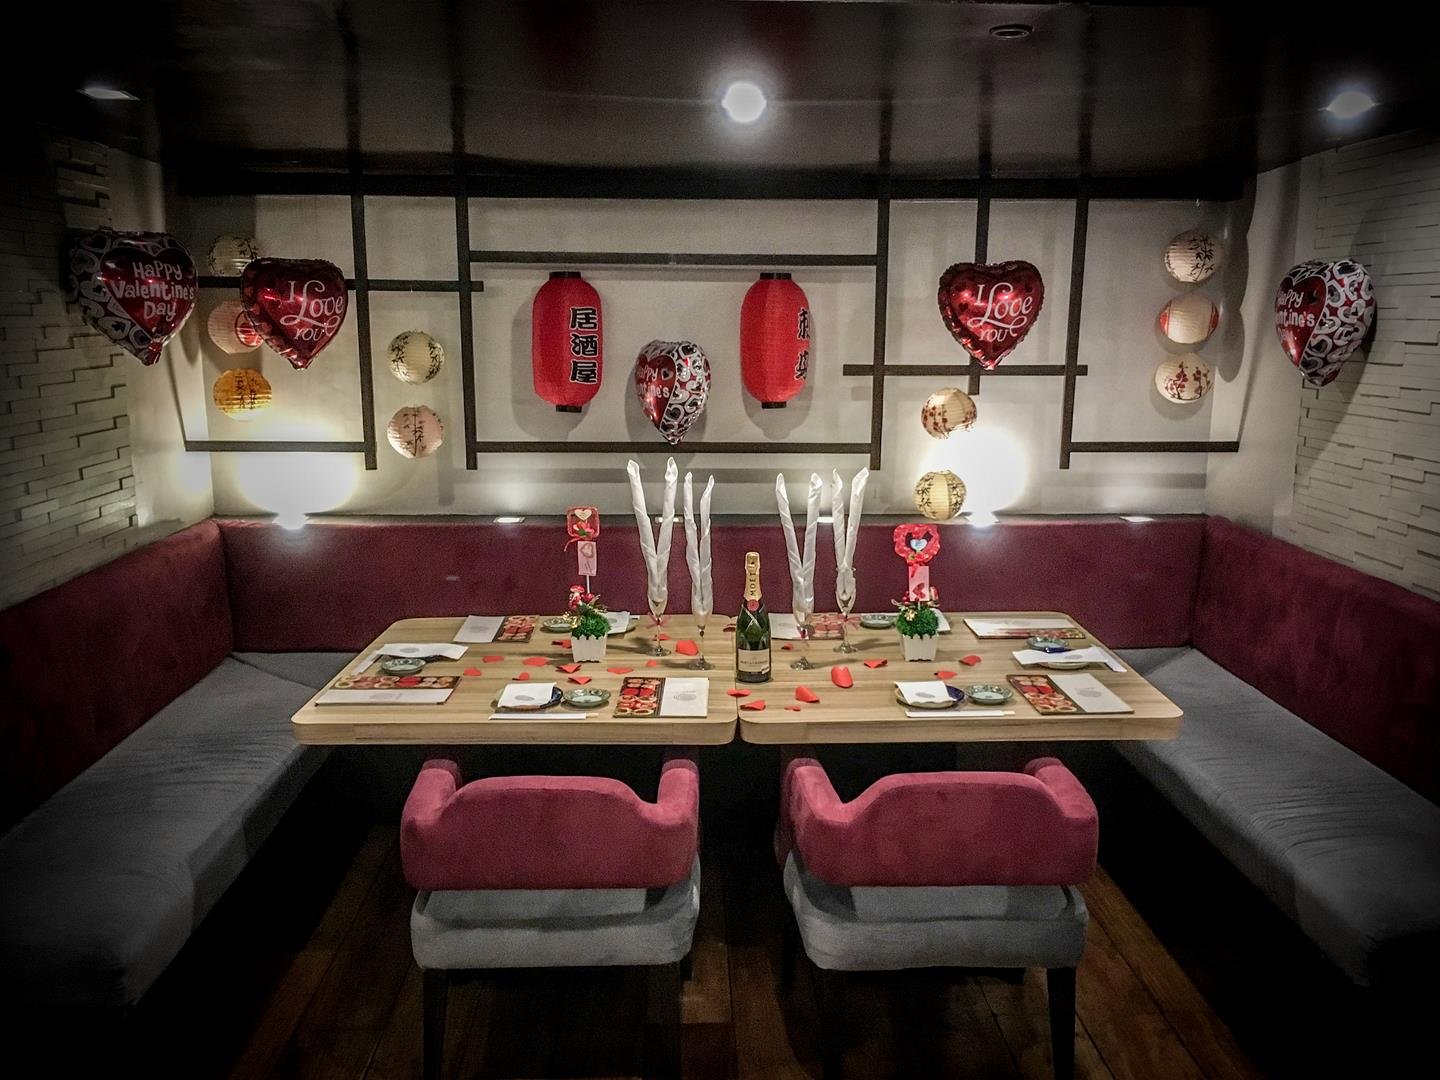 Dating couples, especially family members and close friends, will be glad to share their romantic evening in this intimate seating.